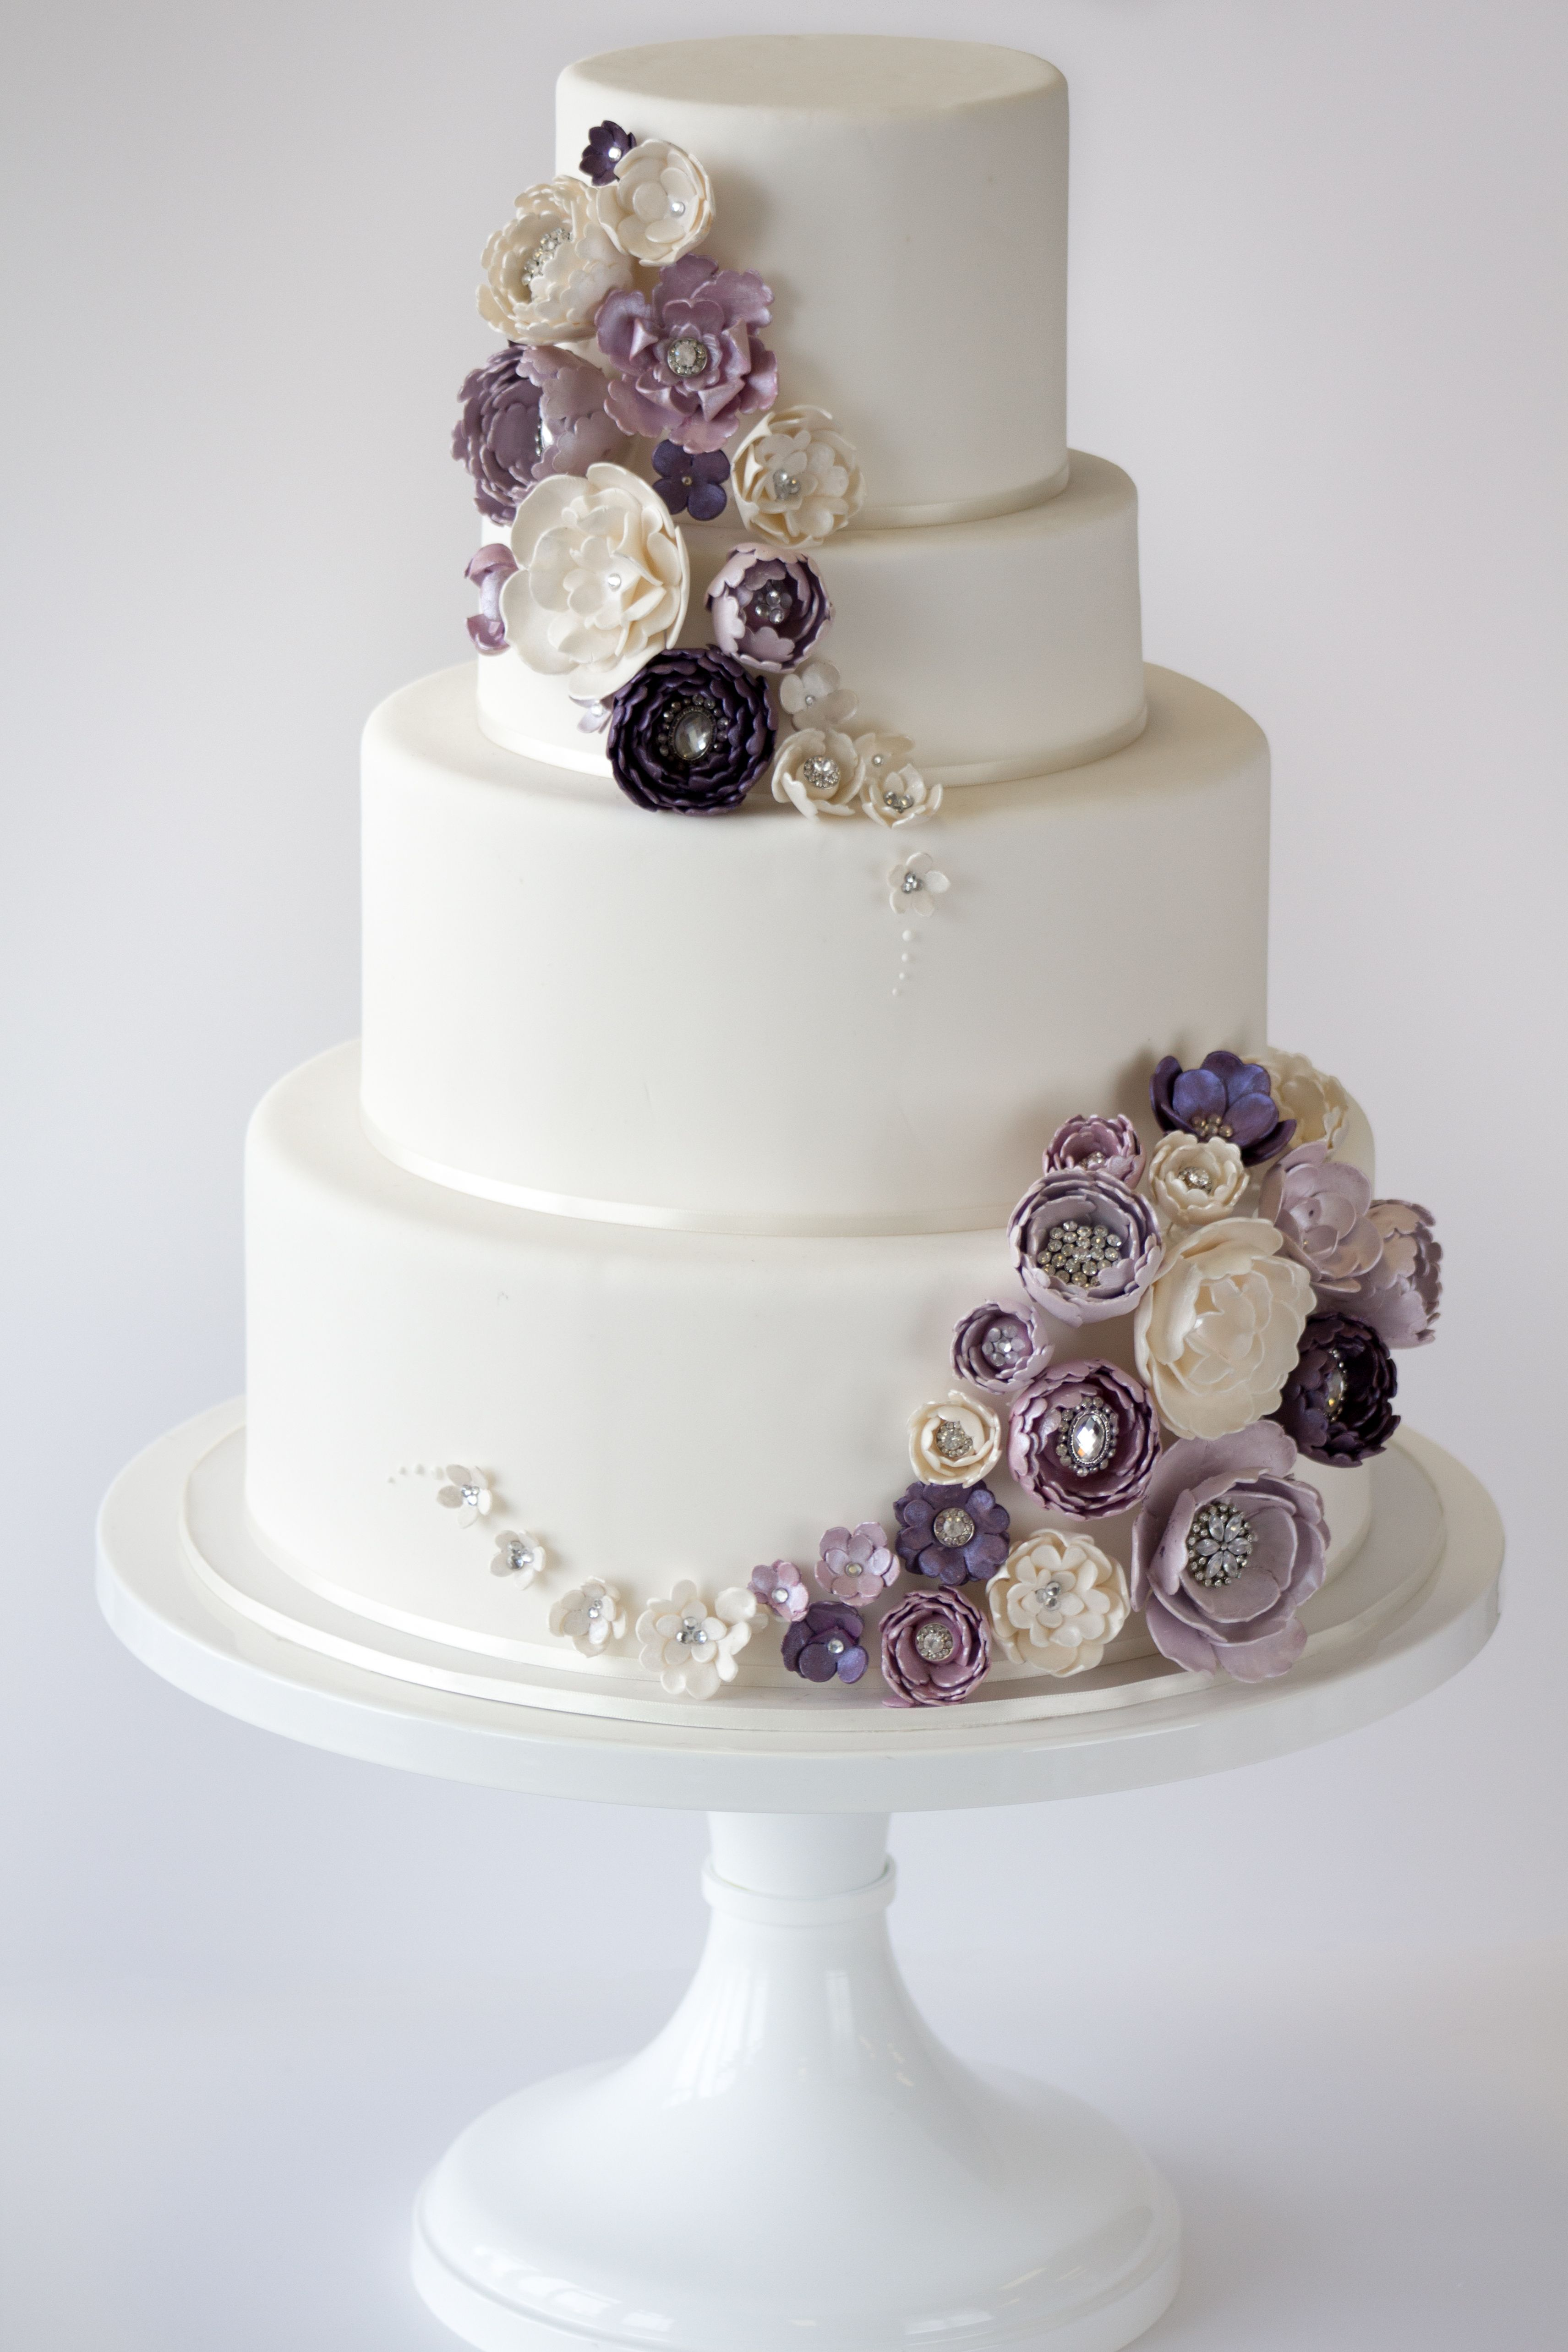 Amy Beck Cake Design - Chicago, IL | Wedding cake with purple and ...